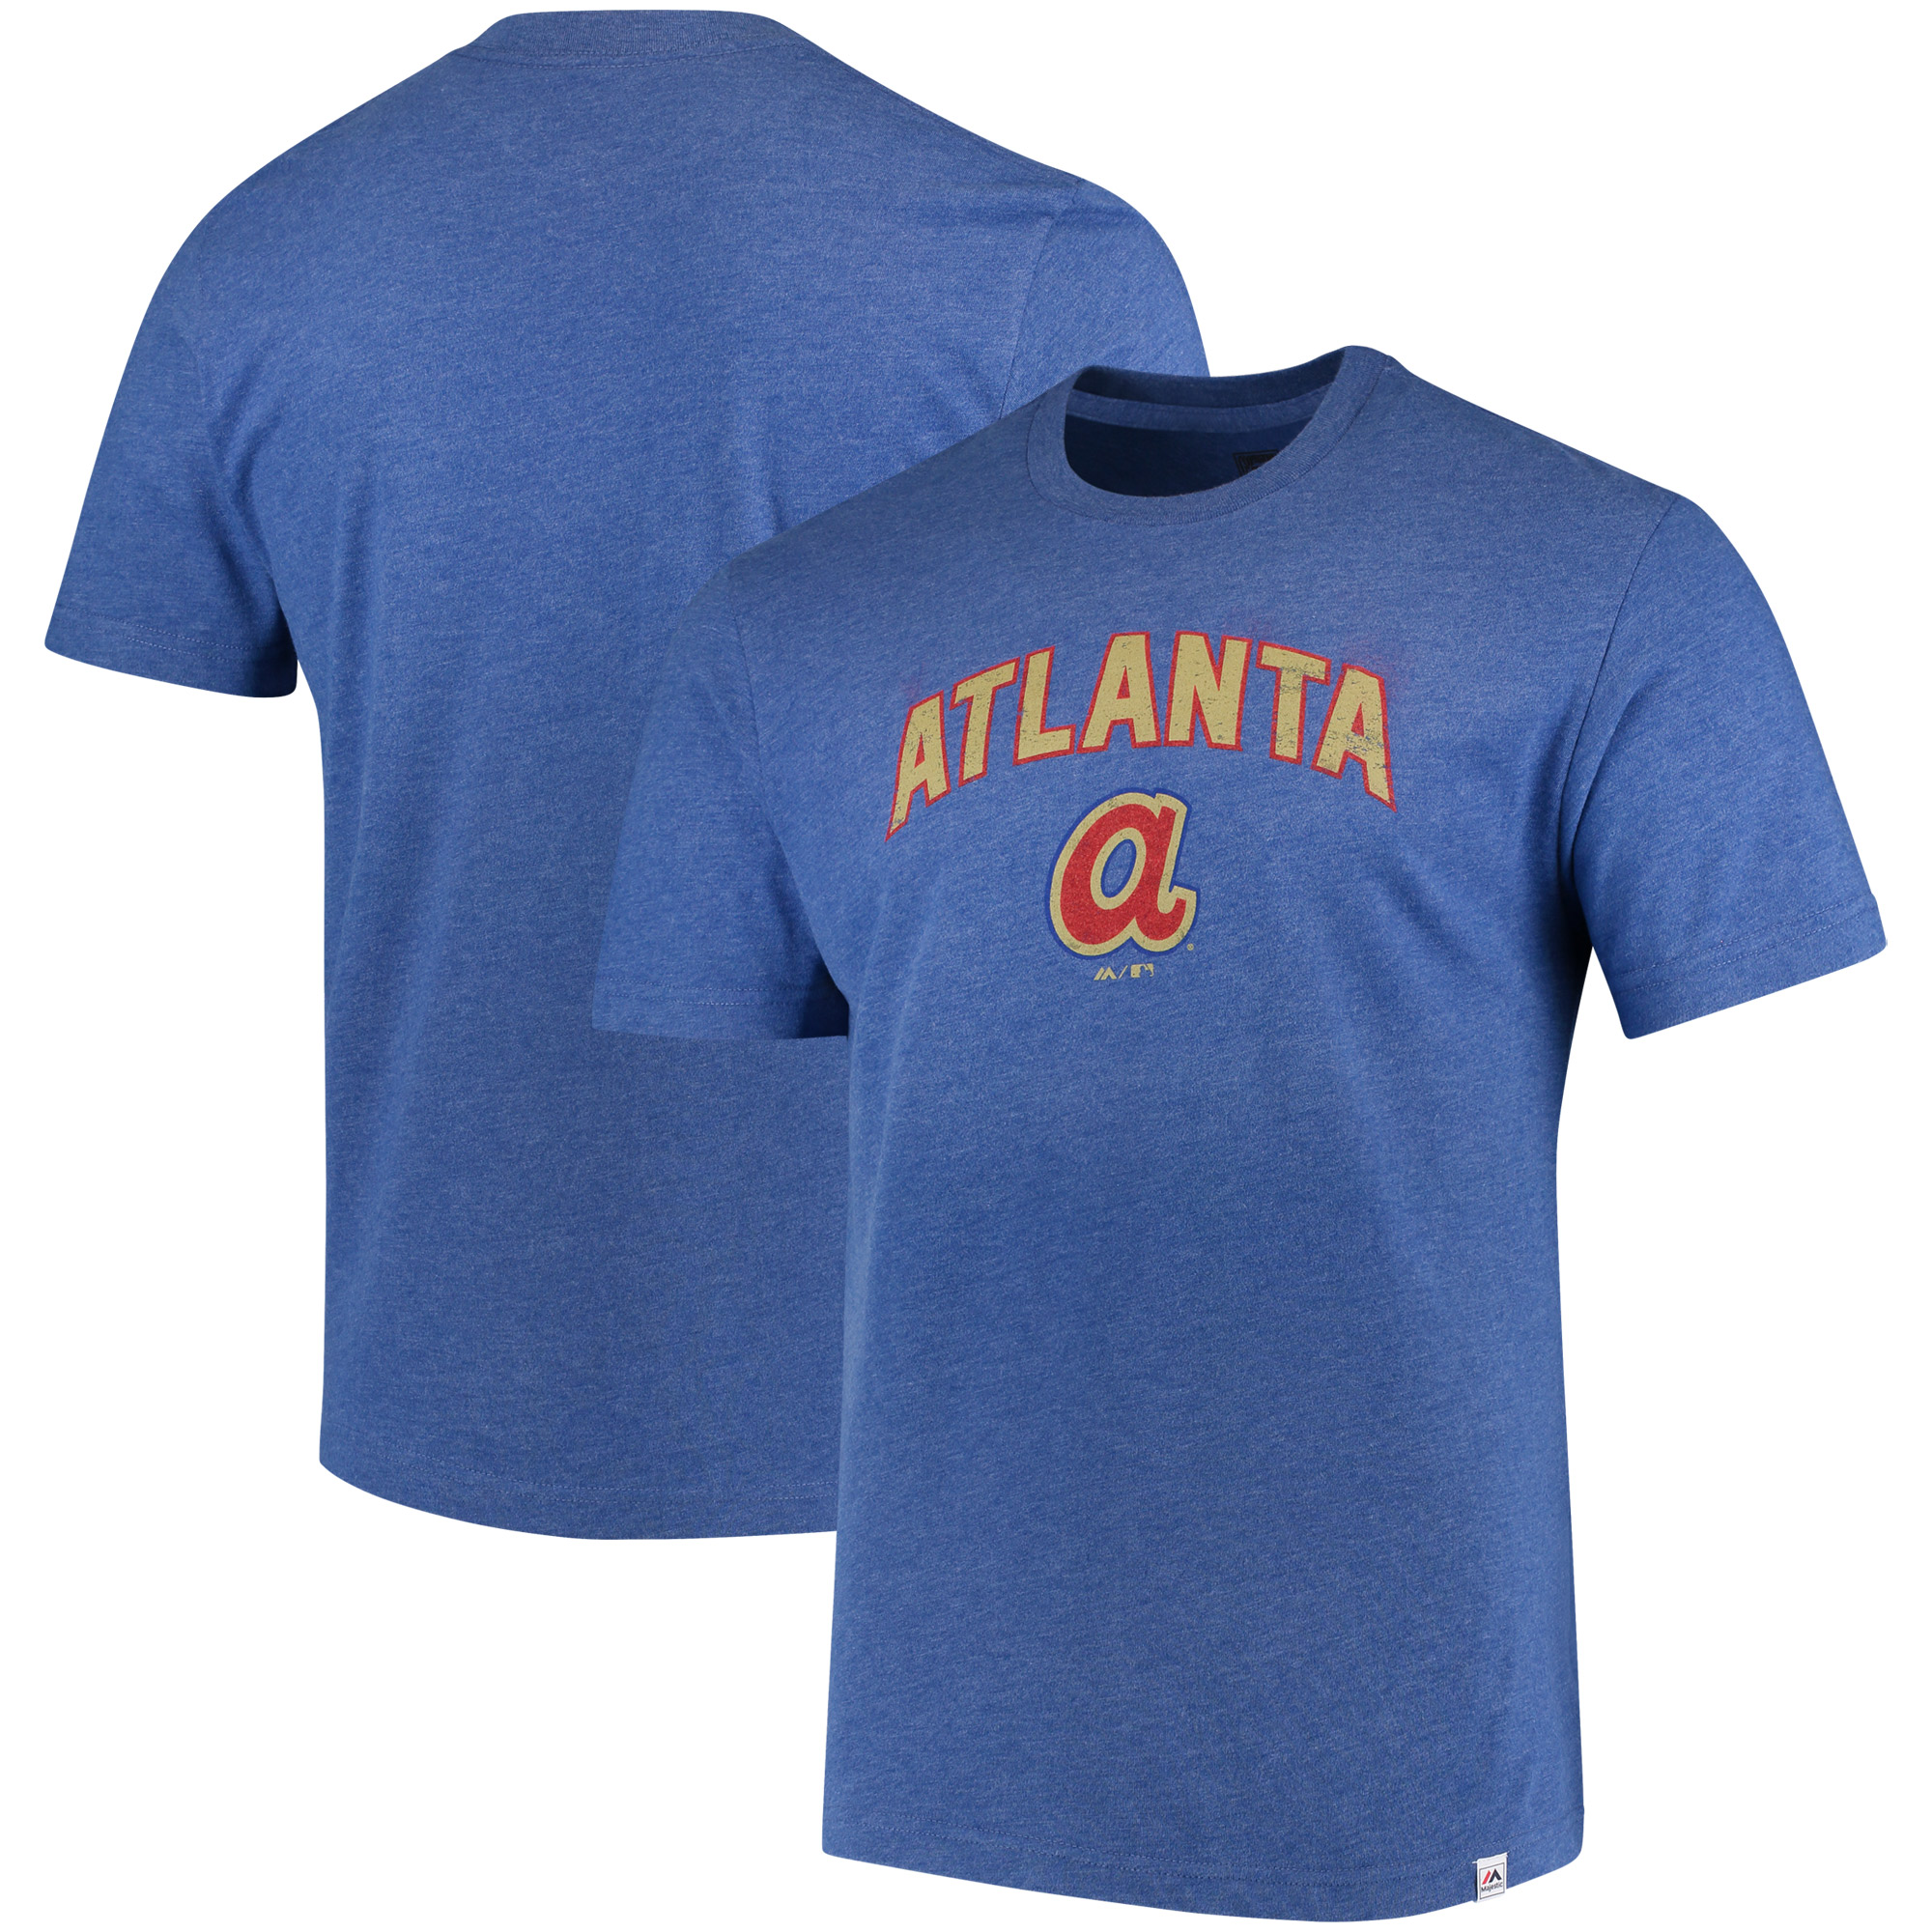 Atlanta Braves Majestic Cooperstown Collection Eephus Pitch Softhand T-Shirt - Royal